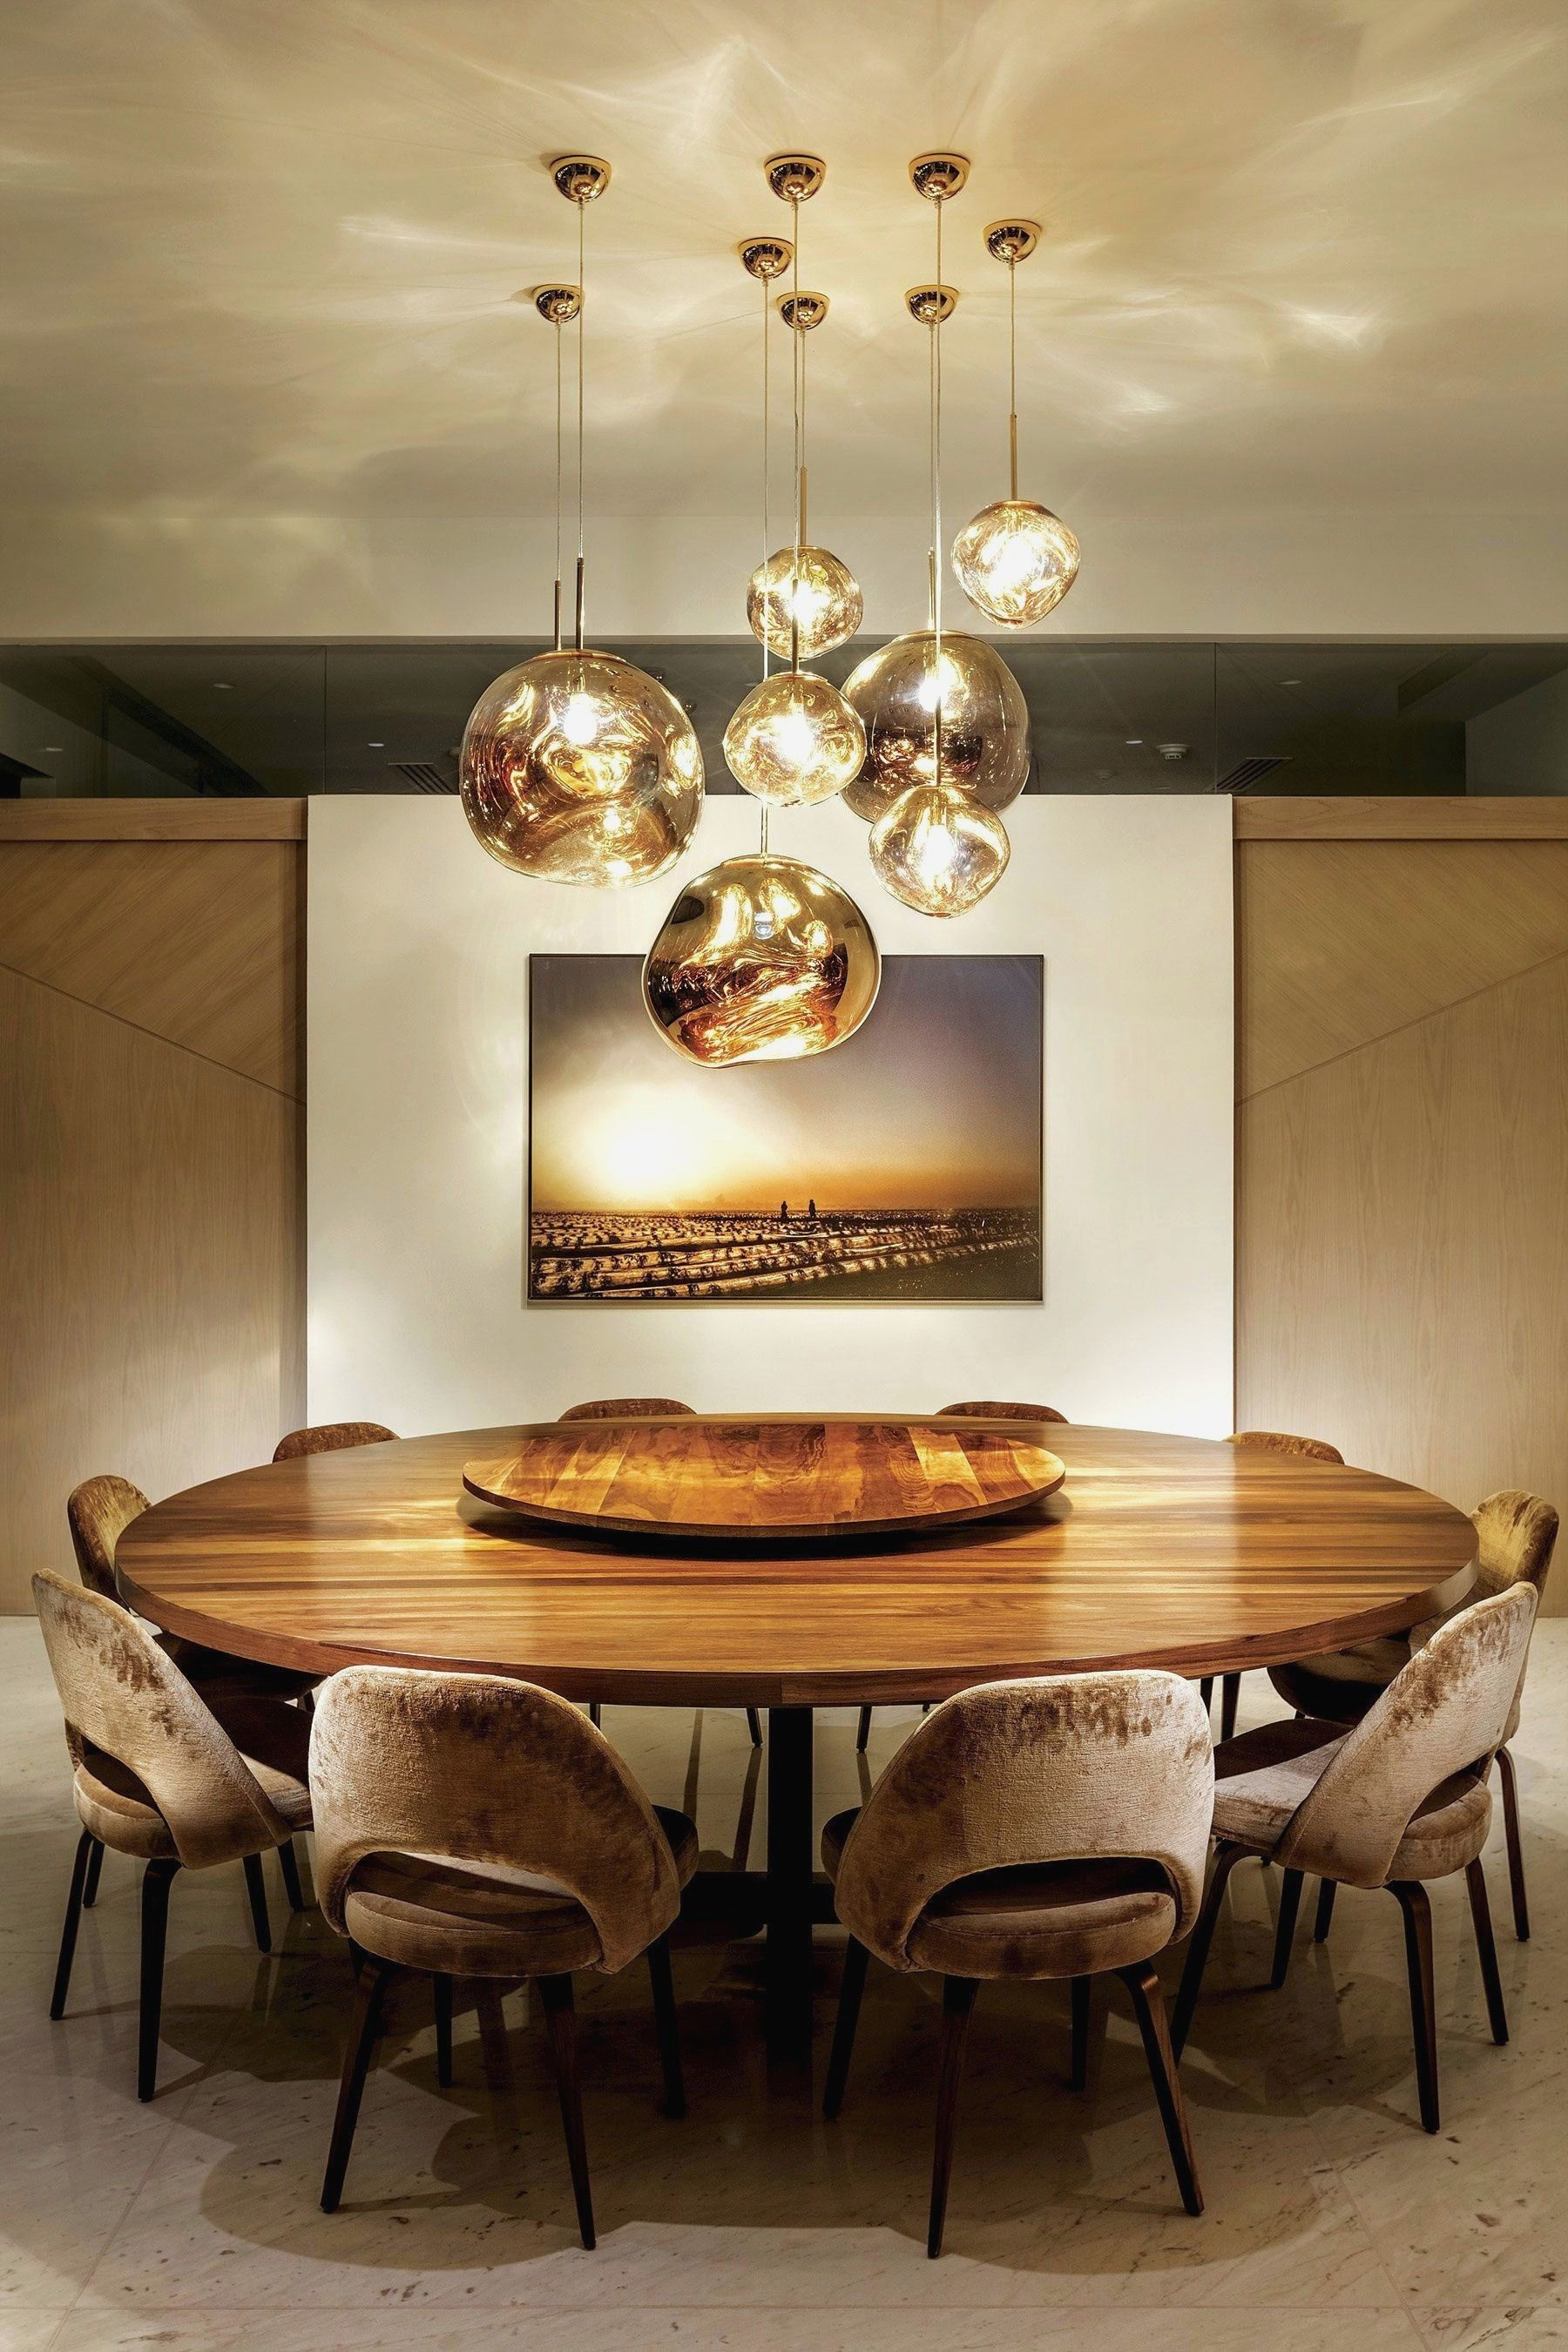 8 Fresh Shaker Style Bedroom Dining Room Table Decor Round